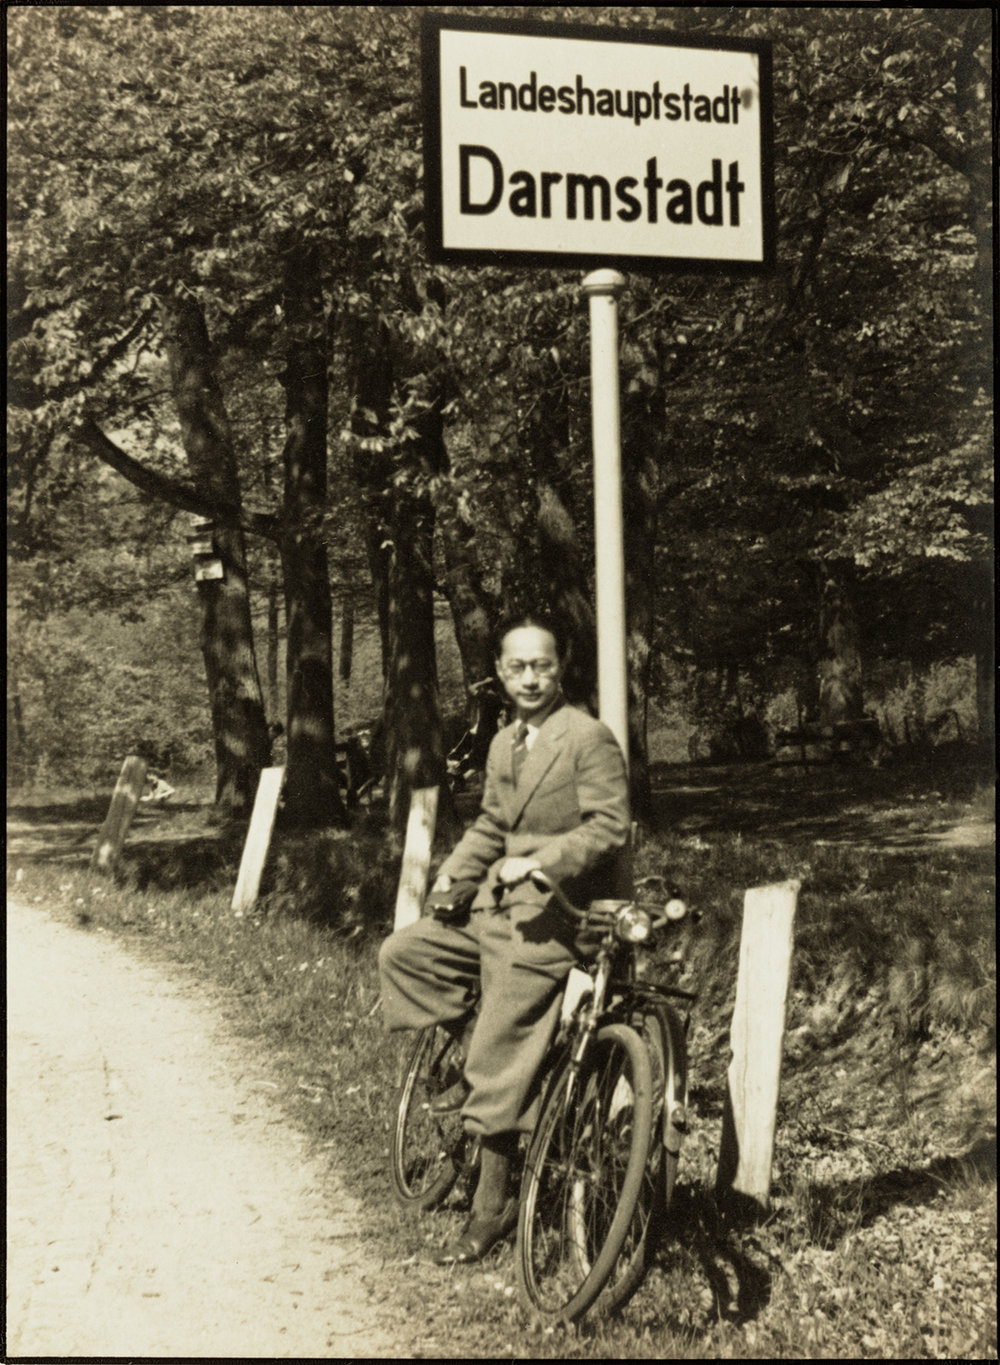 留学达城自拍像, Self-portrait in Darmstadt, 1939 / Courtesy of Jin Hua